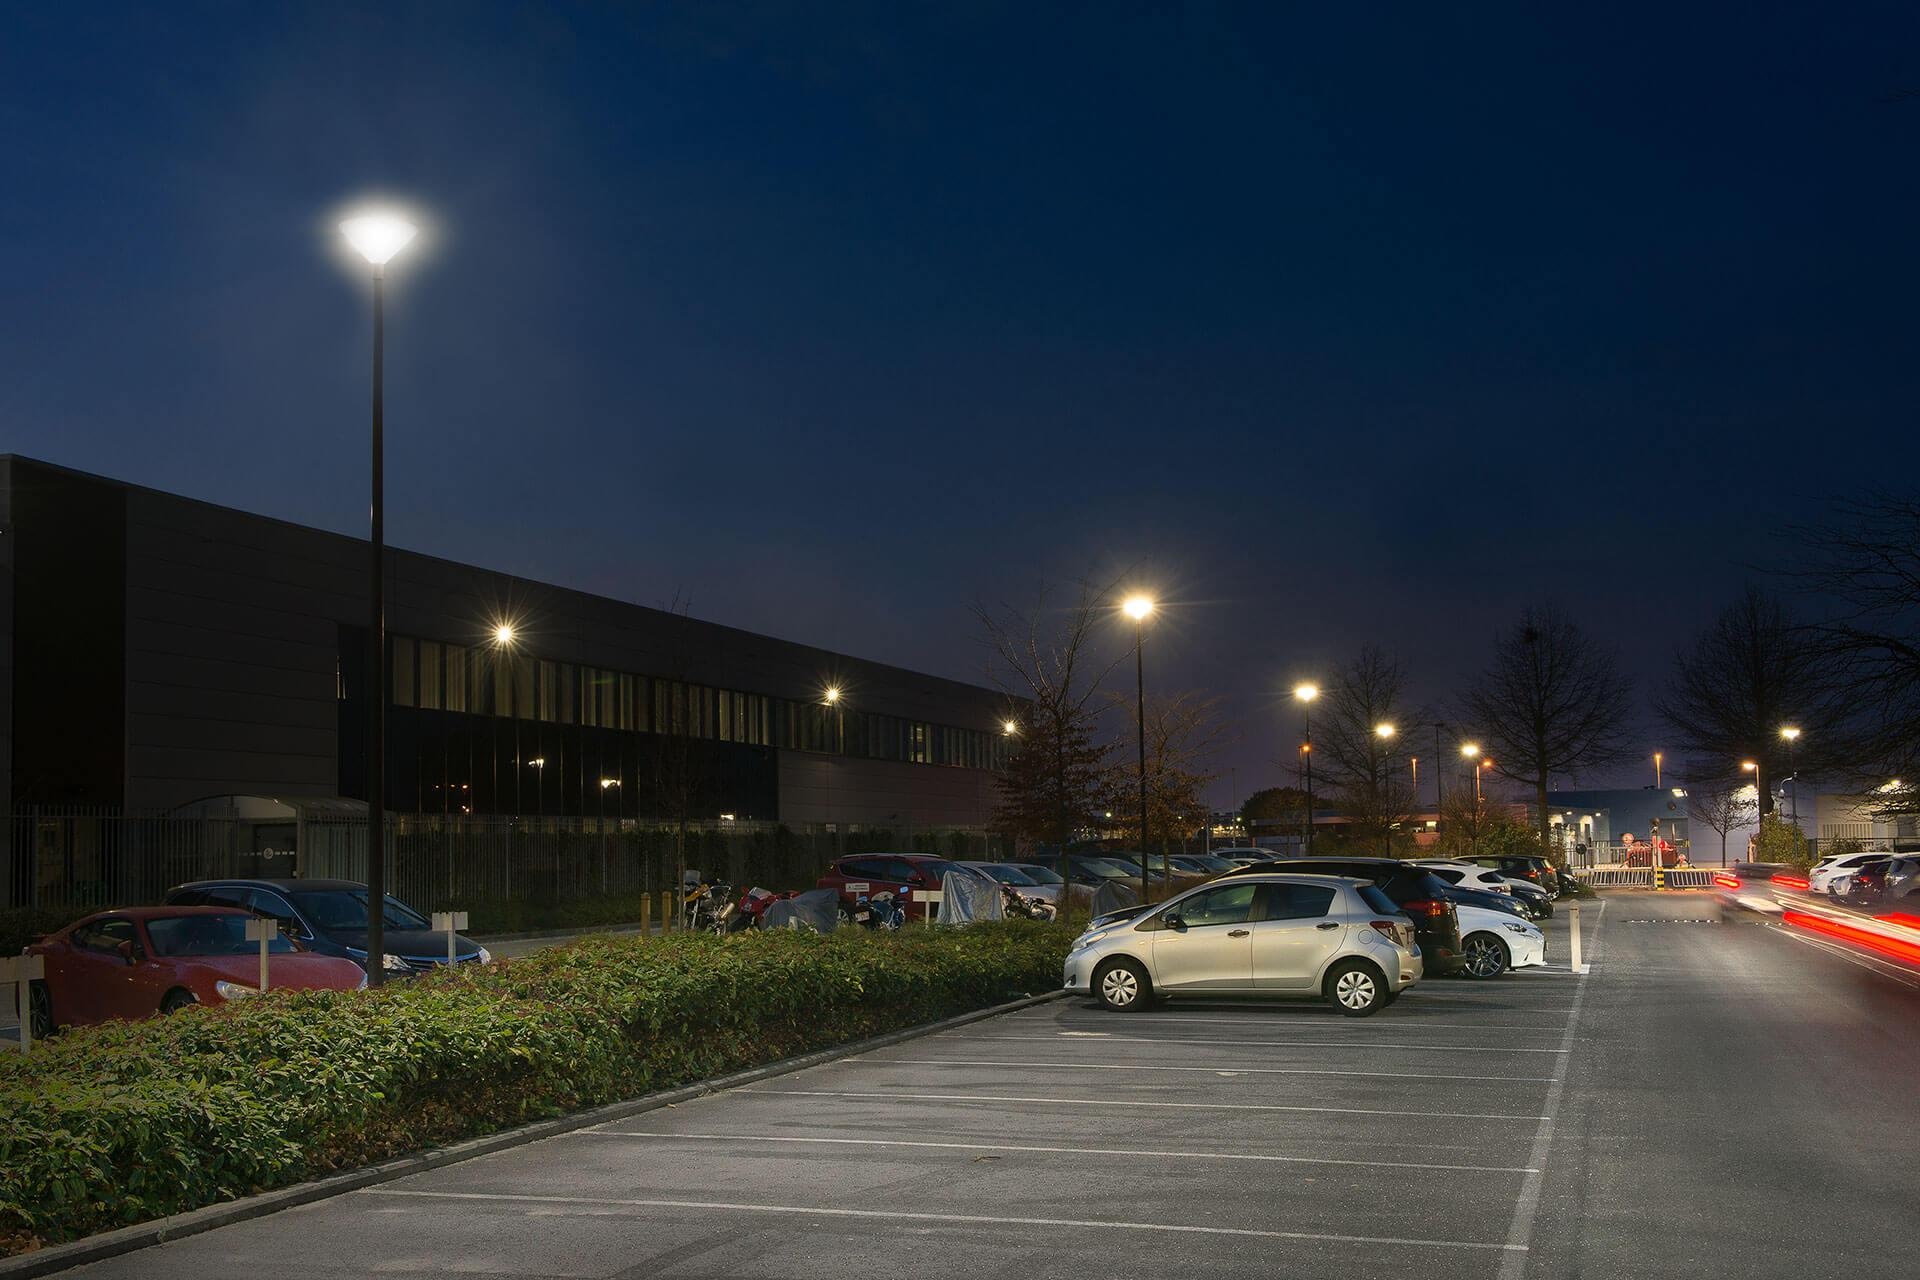 Friza led luminaire improves safety for employees and visitors with reduced energy costs